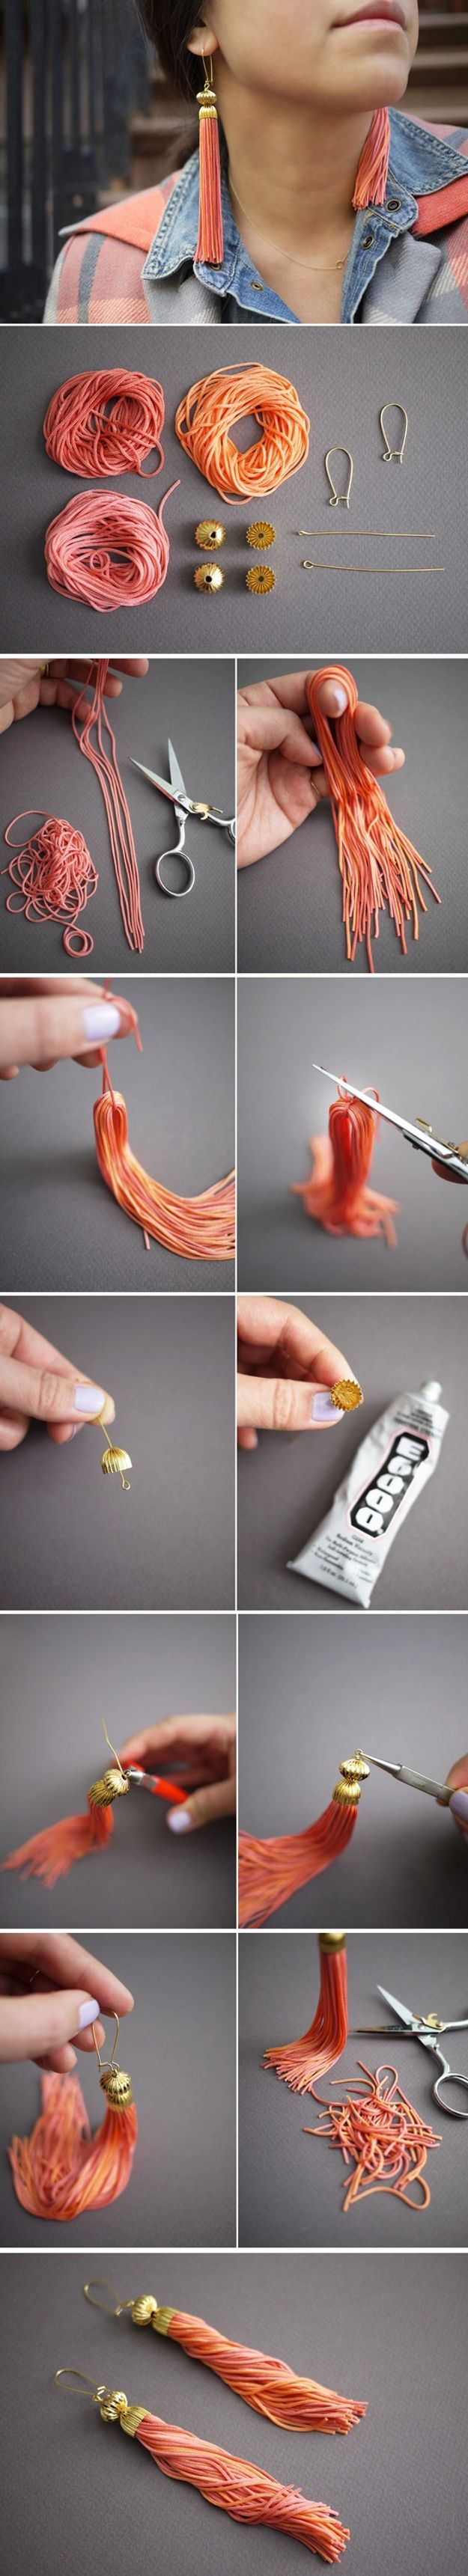 How to Make Tassel Earrings | A really cool step by step guide to make these amazing tassel earrings. #DiyReady www.diyready.com